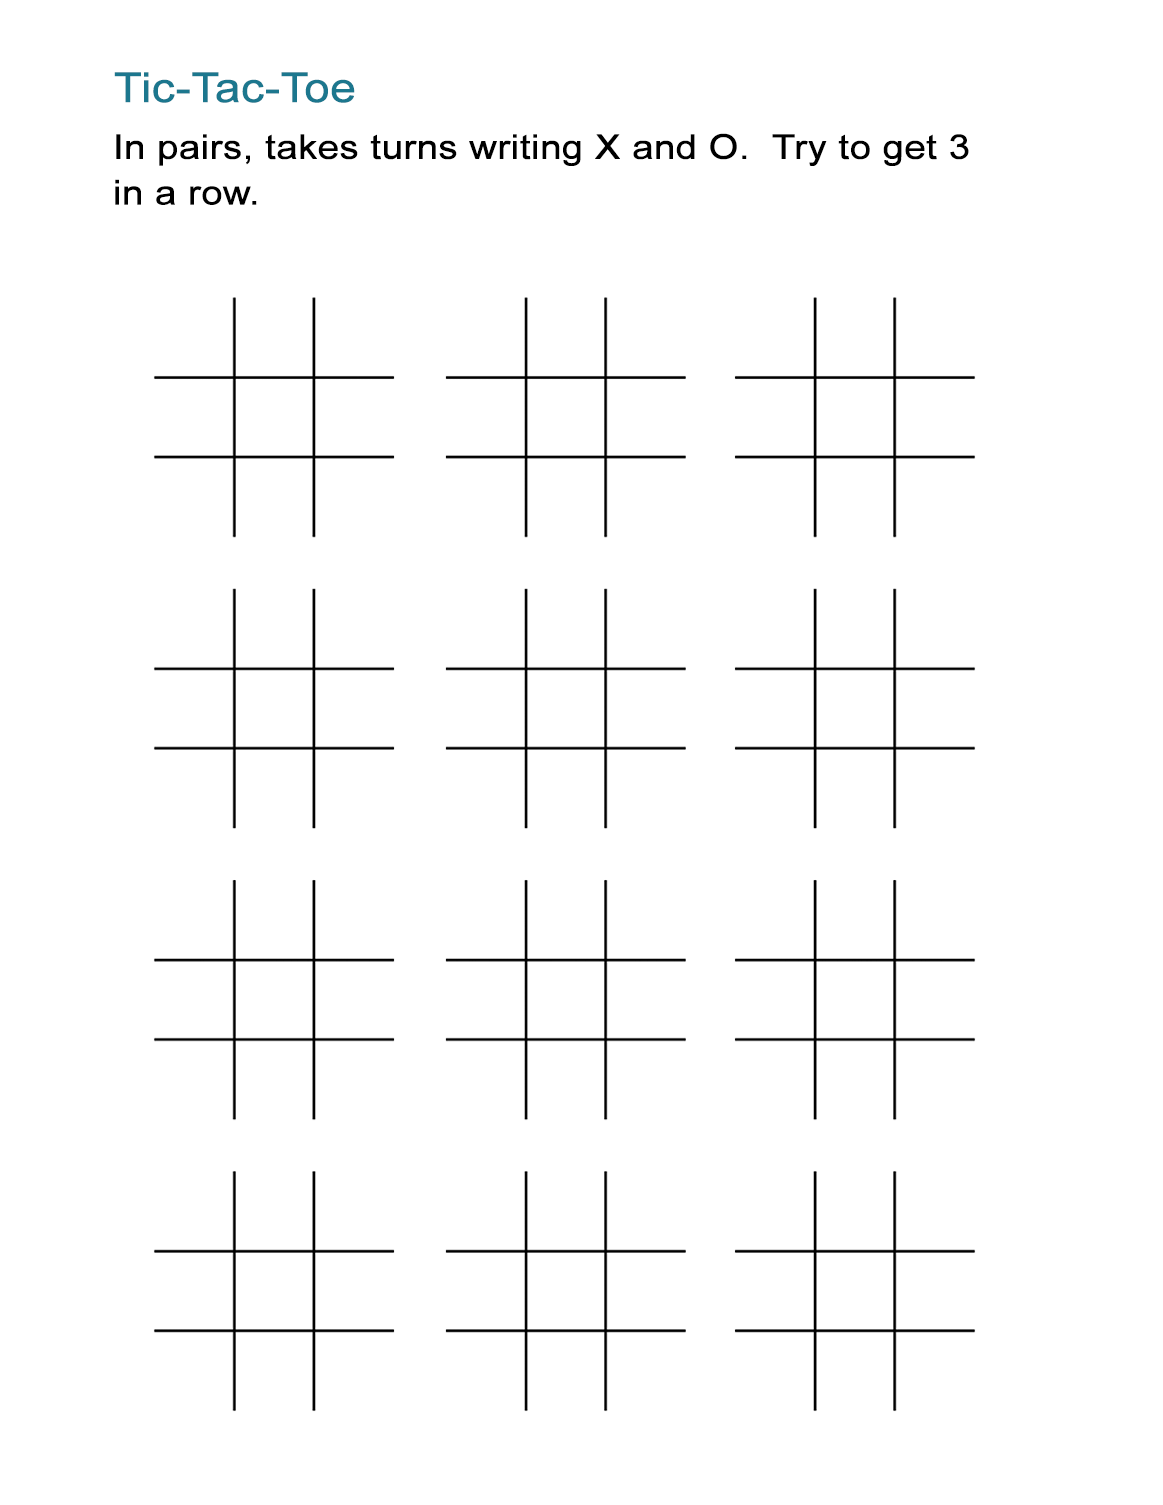 image about Free Printable Tic Tac Toe Board called Printable Tic Tac Toe Sheets: 2-Participant Blank Match Discussion boards